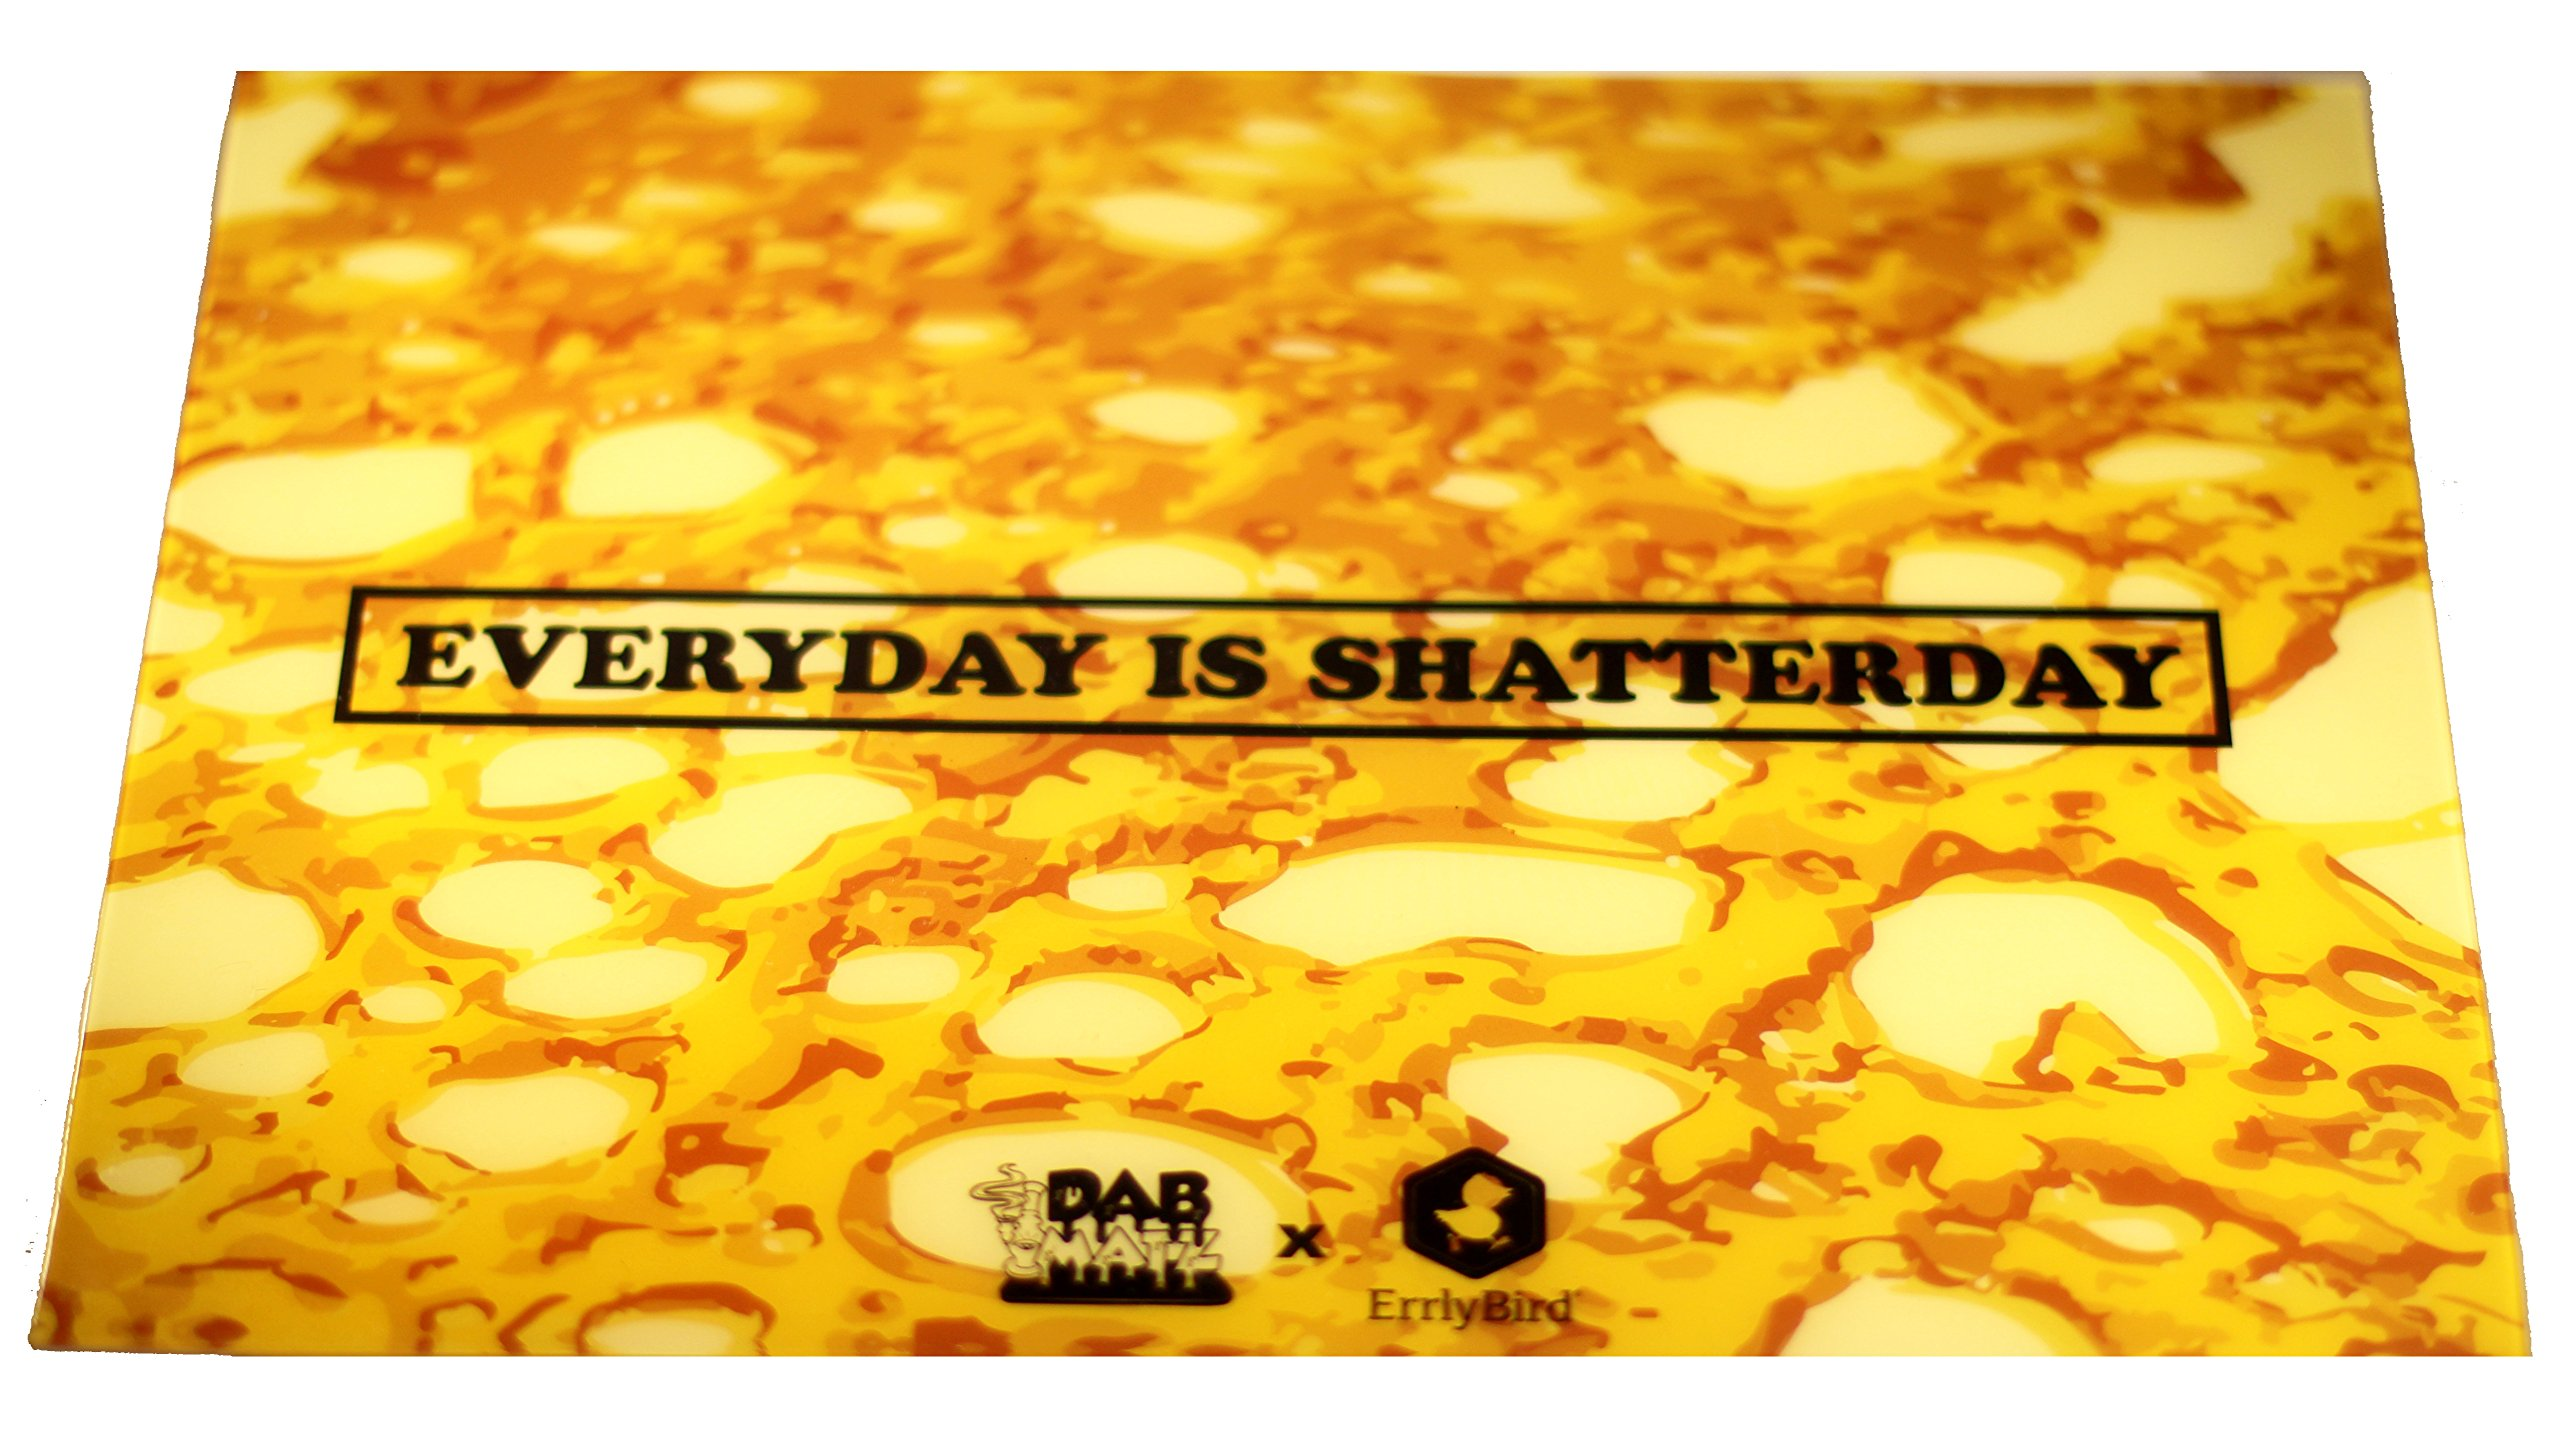 Non-Stick Silicone Dab Mat 8 x 11 inch - Everyday is Shatterday Silicone Mat by Dabmatz (Image #1)